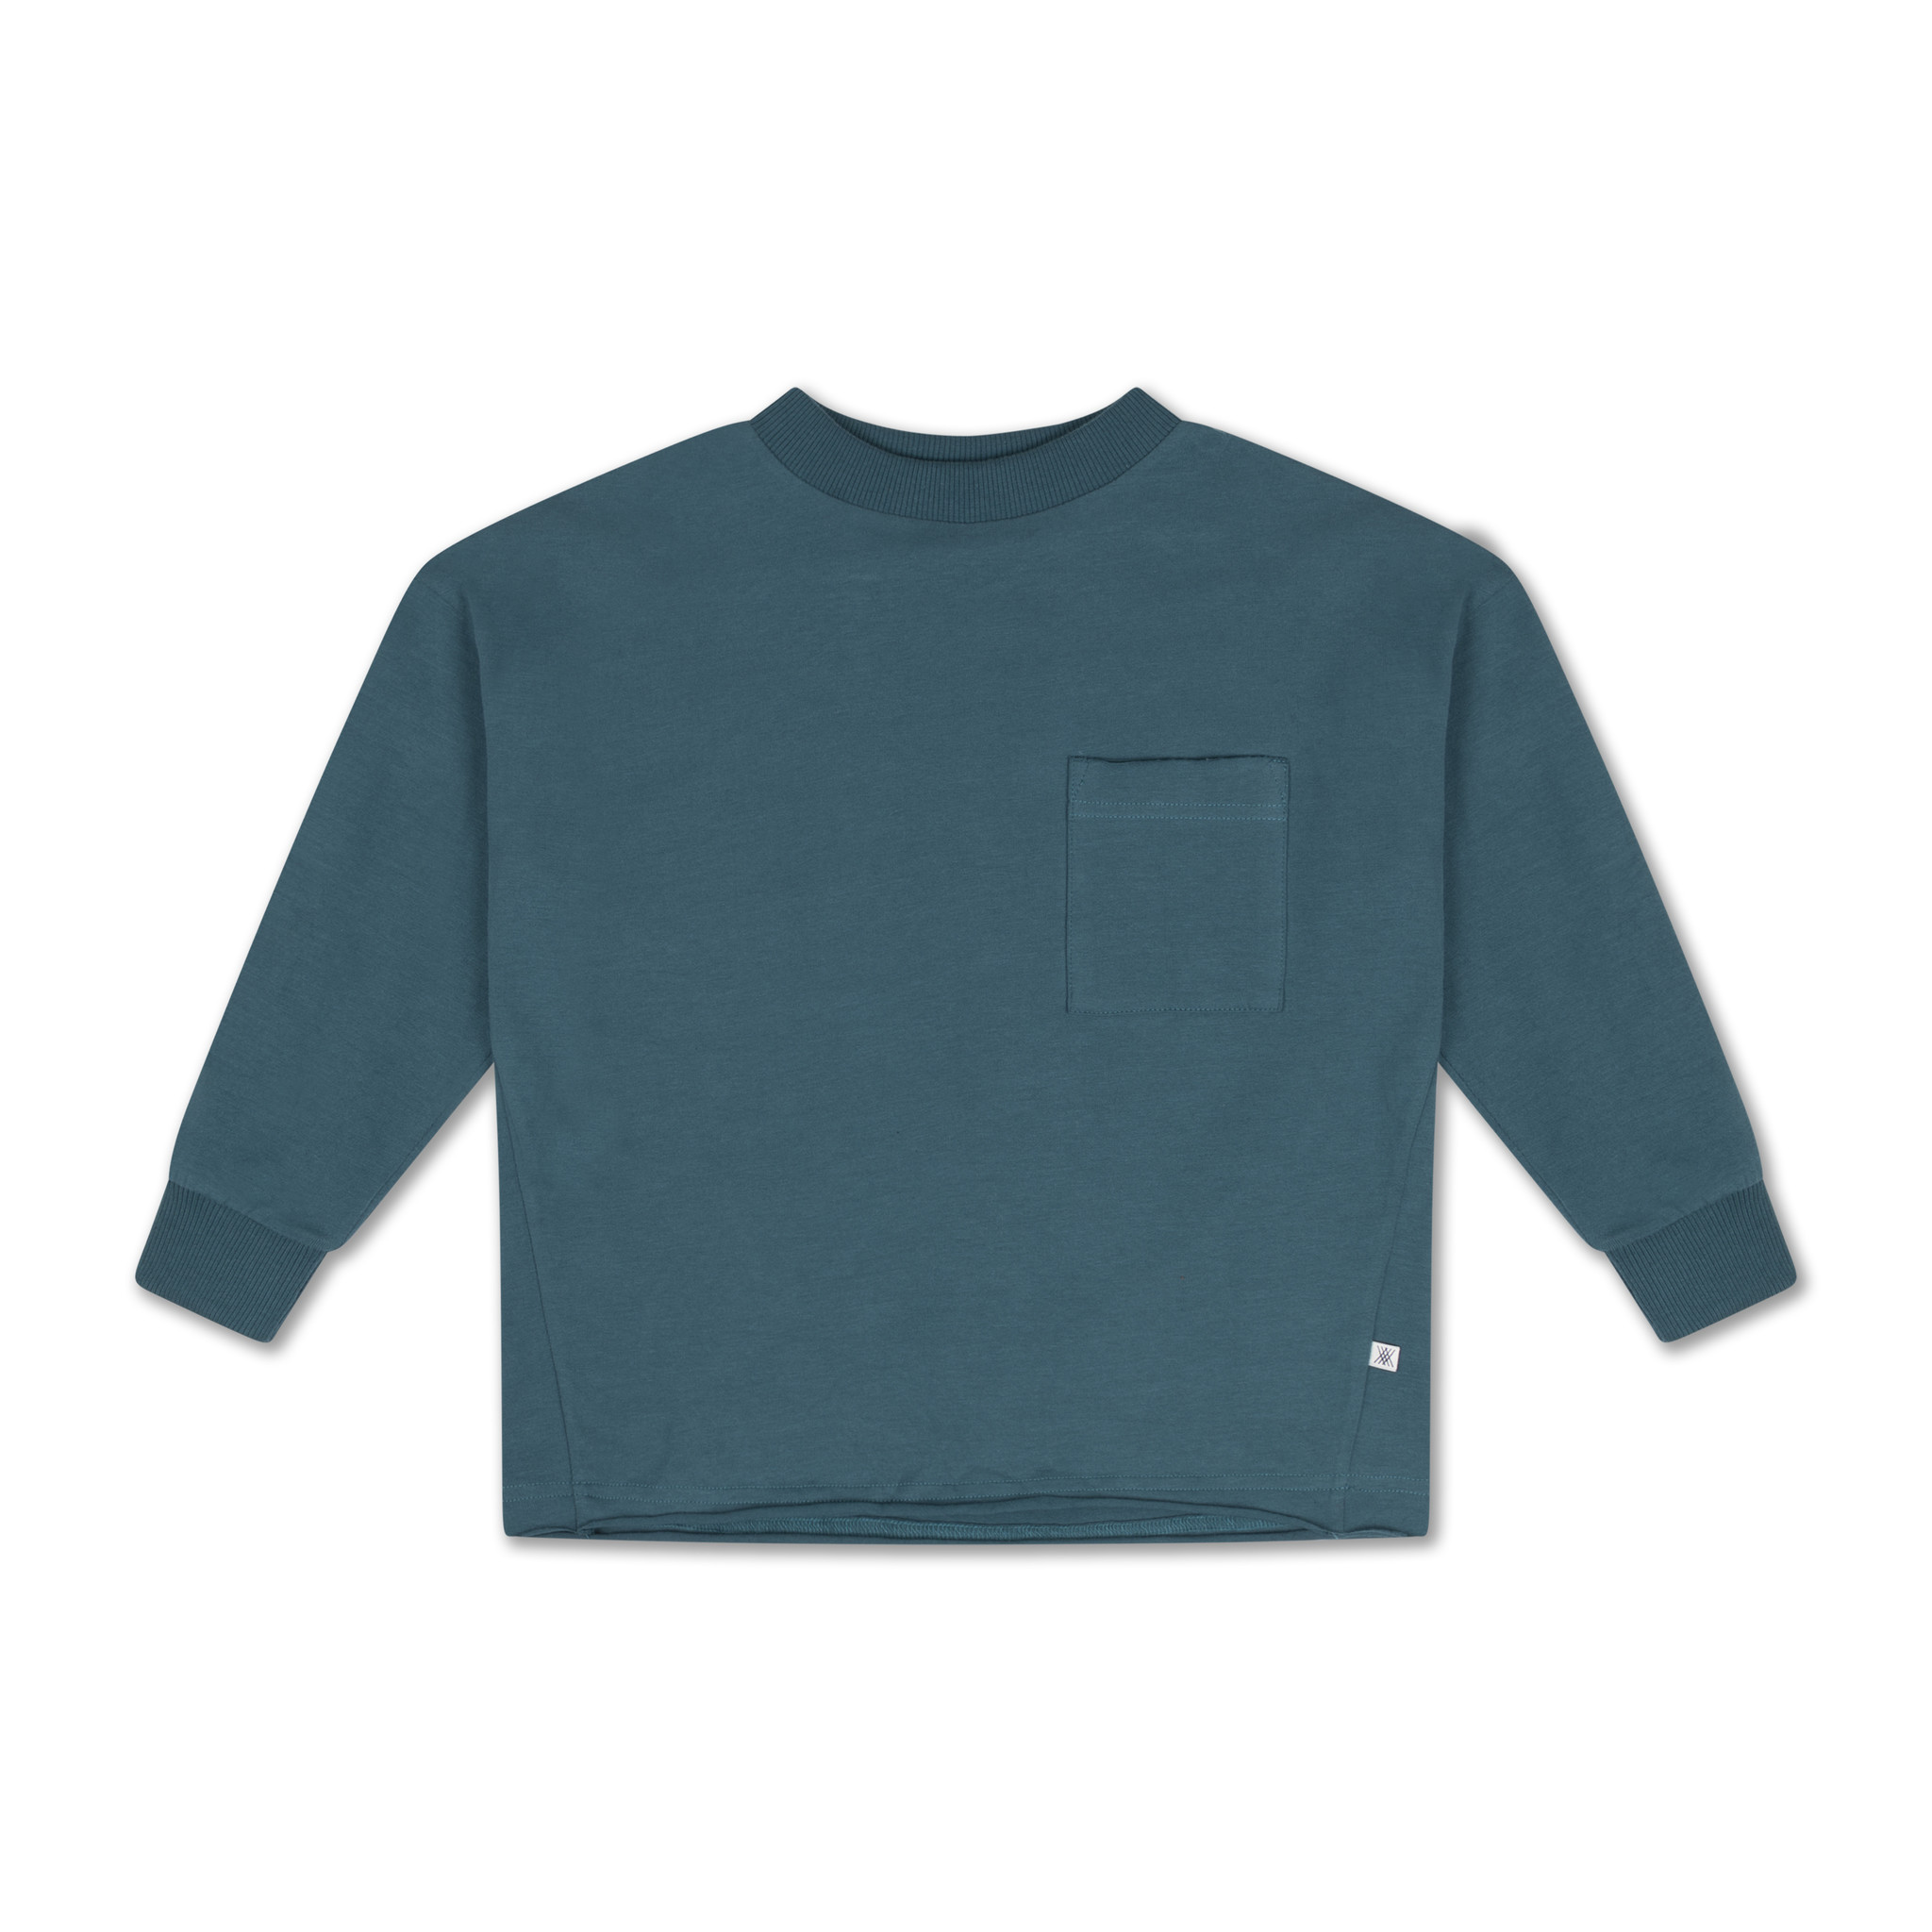 Sweat tee - Dark Dusty Blue-1